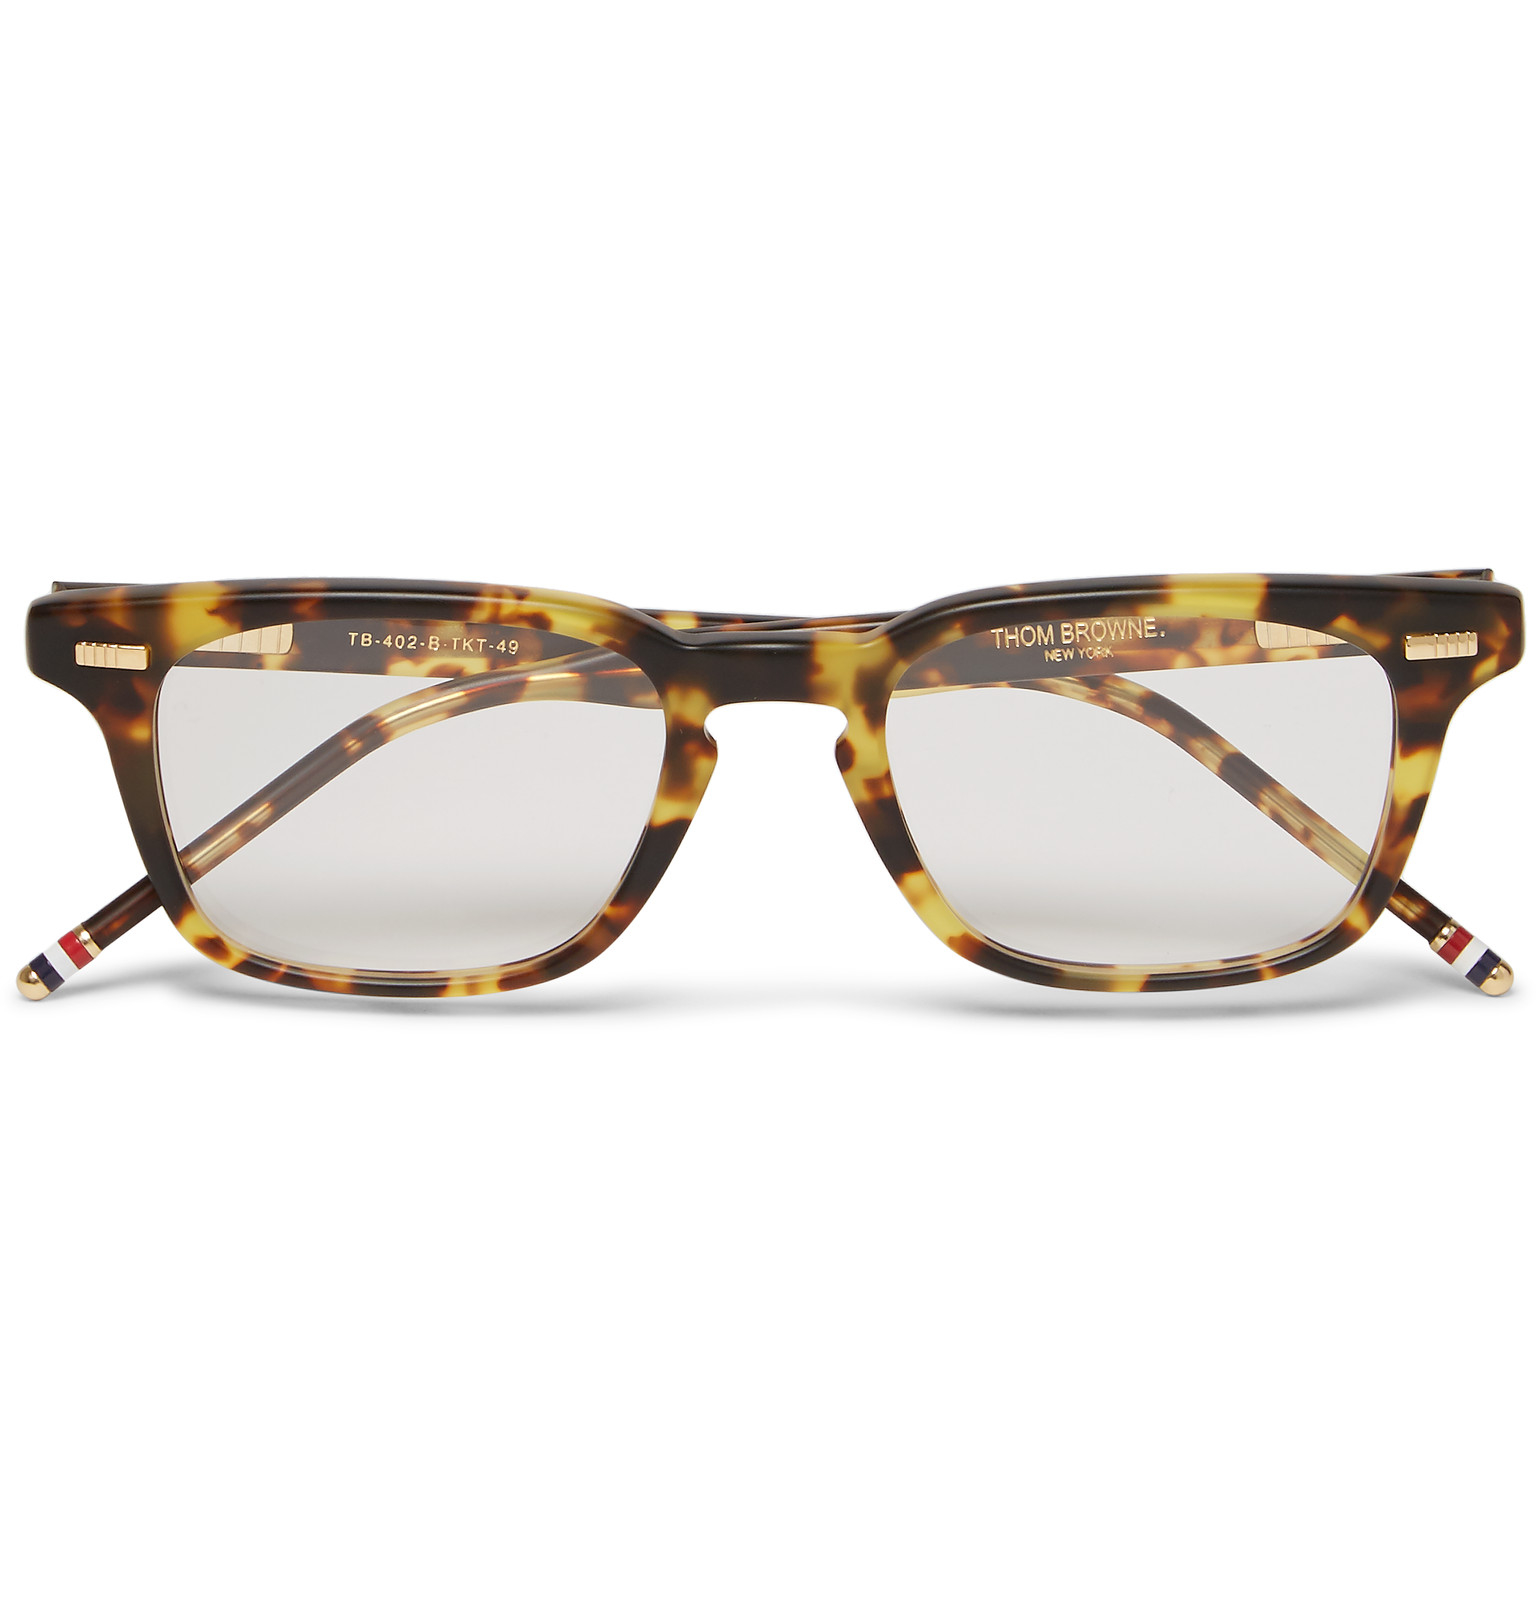 d4aeec6d793a Thom Browne Square-frame Tortoiseshell Acetate Optical Glasses in ...